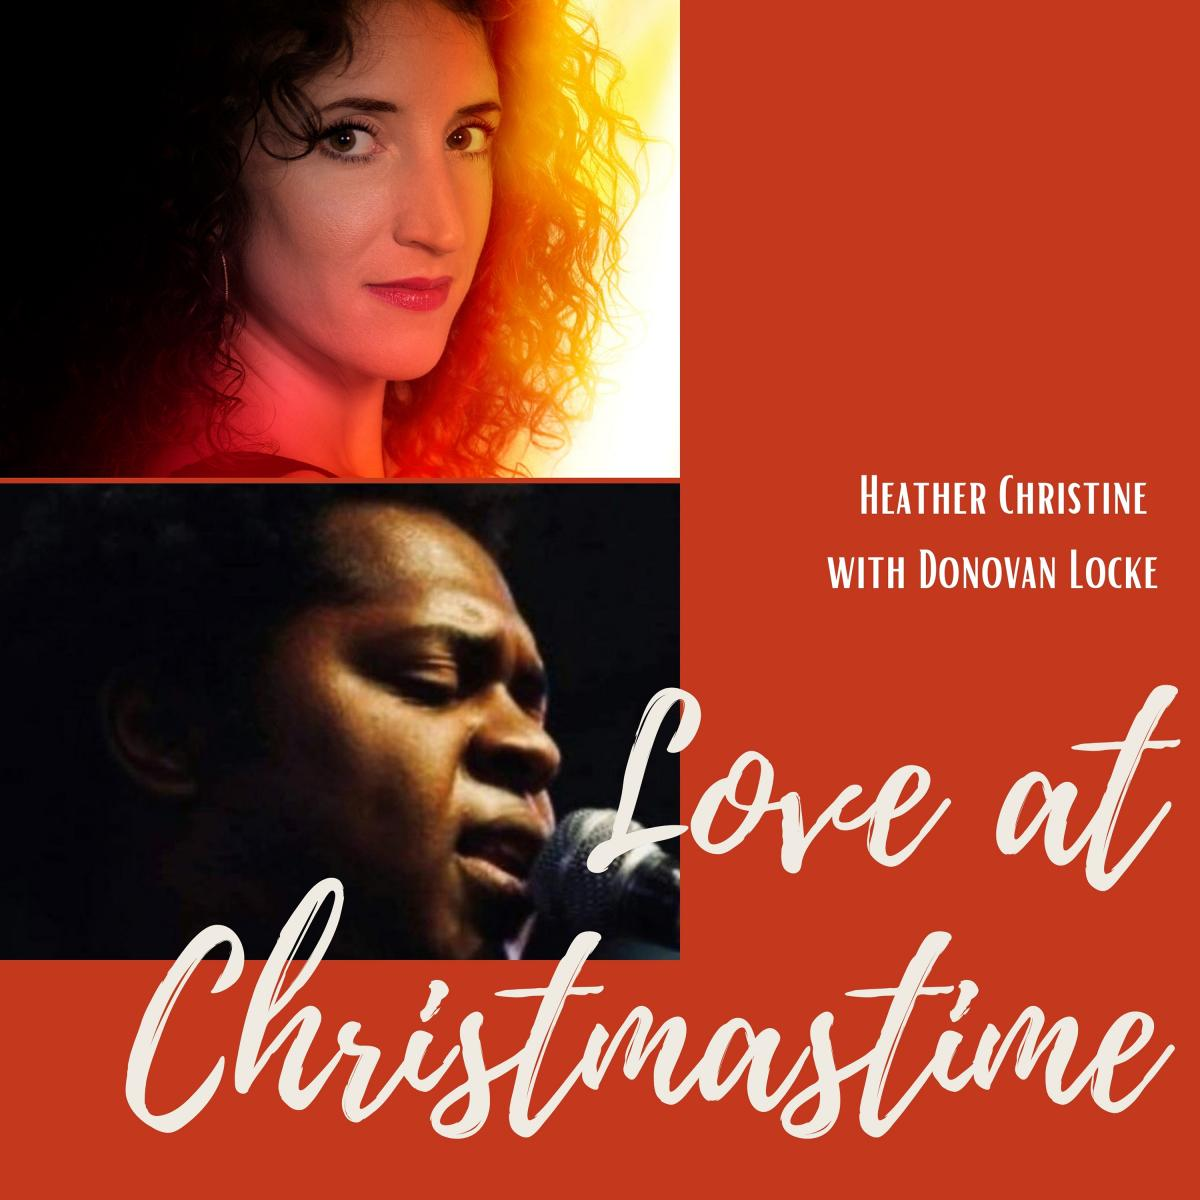 Heather Christine & Featuring Donovan Locke